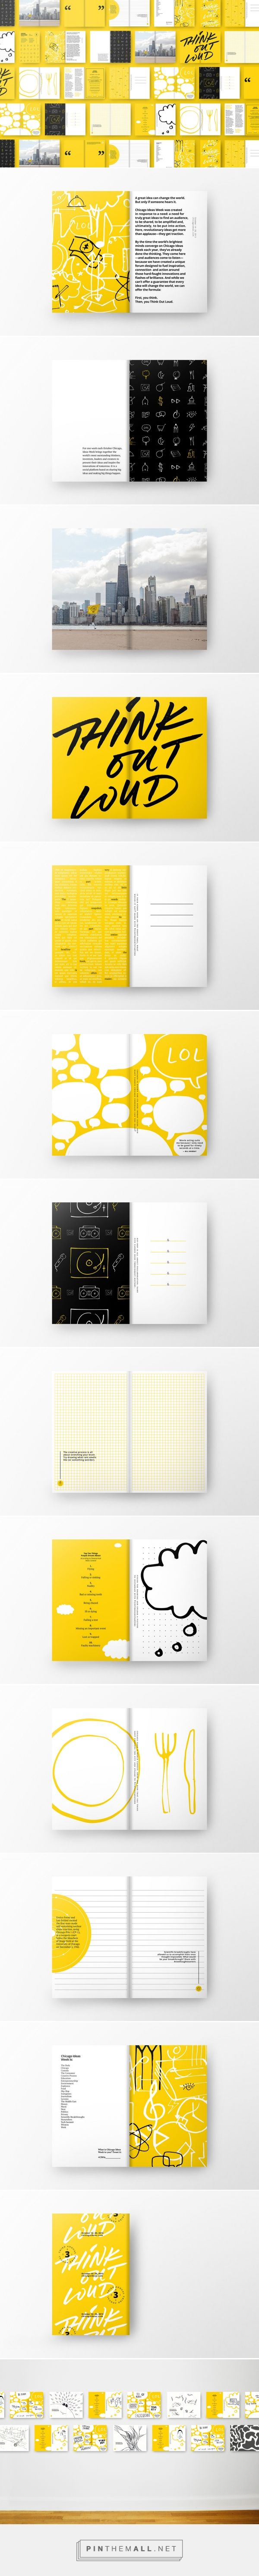 Chicago Ideas Week on Behance | Fivestar Branding – Design and Branding Agency & Inspiration Gallery